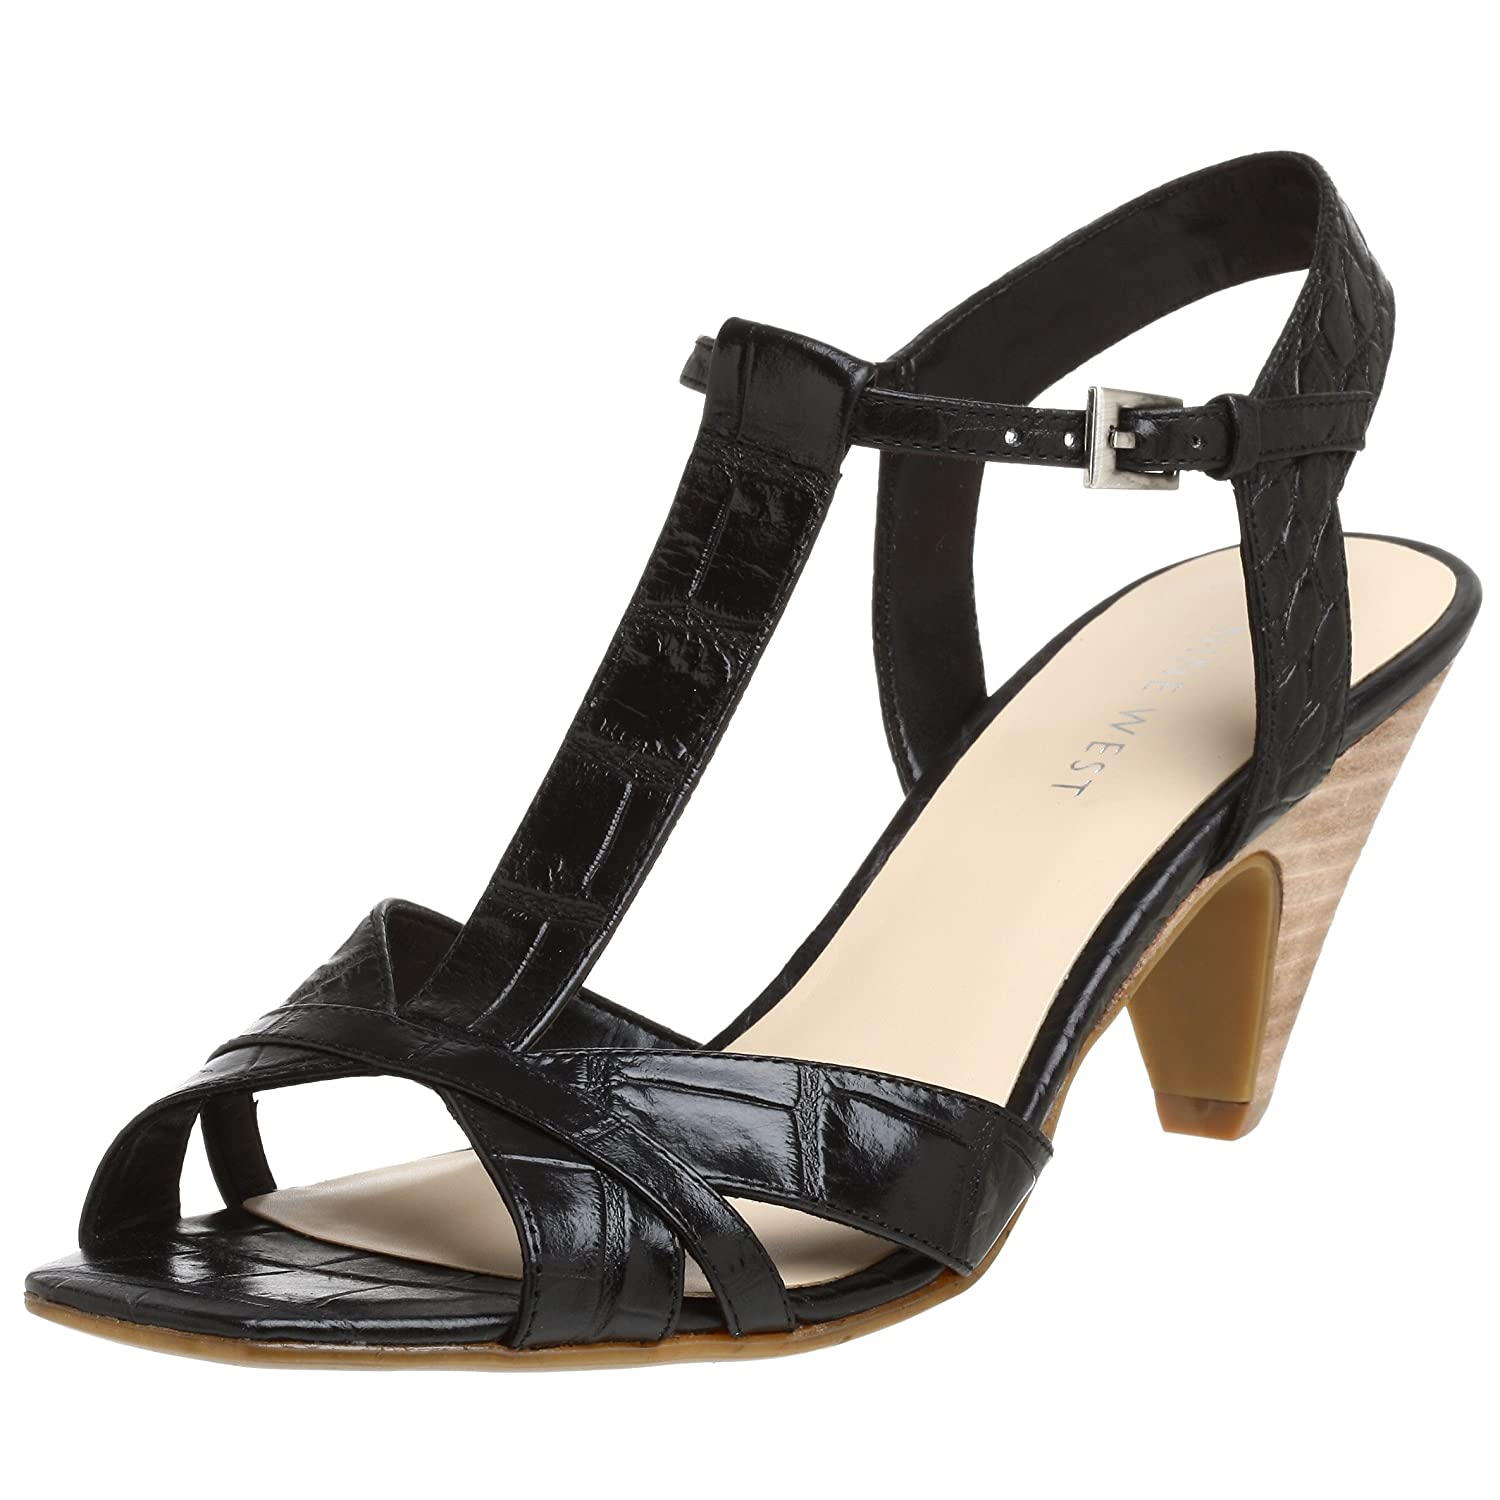 Nine West Women's Neatty T-Strap Sandal - Free Overnight Shipping & Return Shipping: Endless.com :  t-strap heels sandals shoes